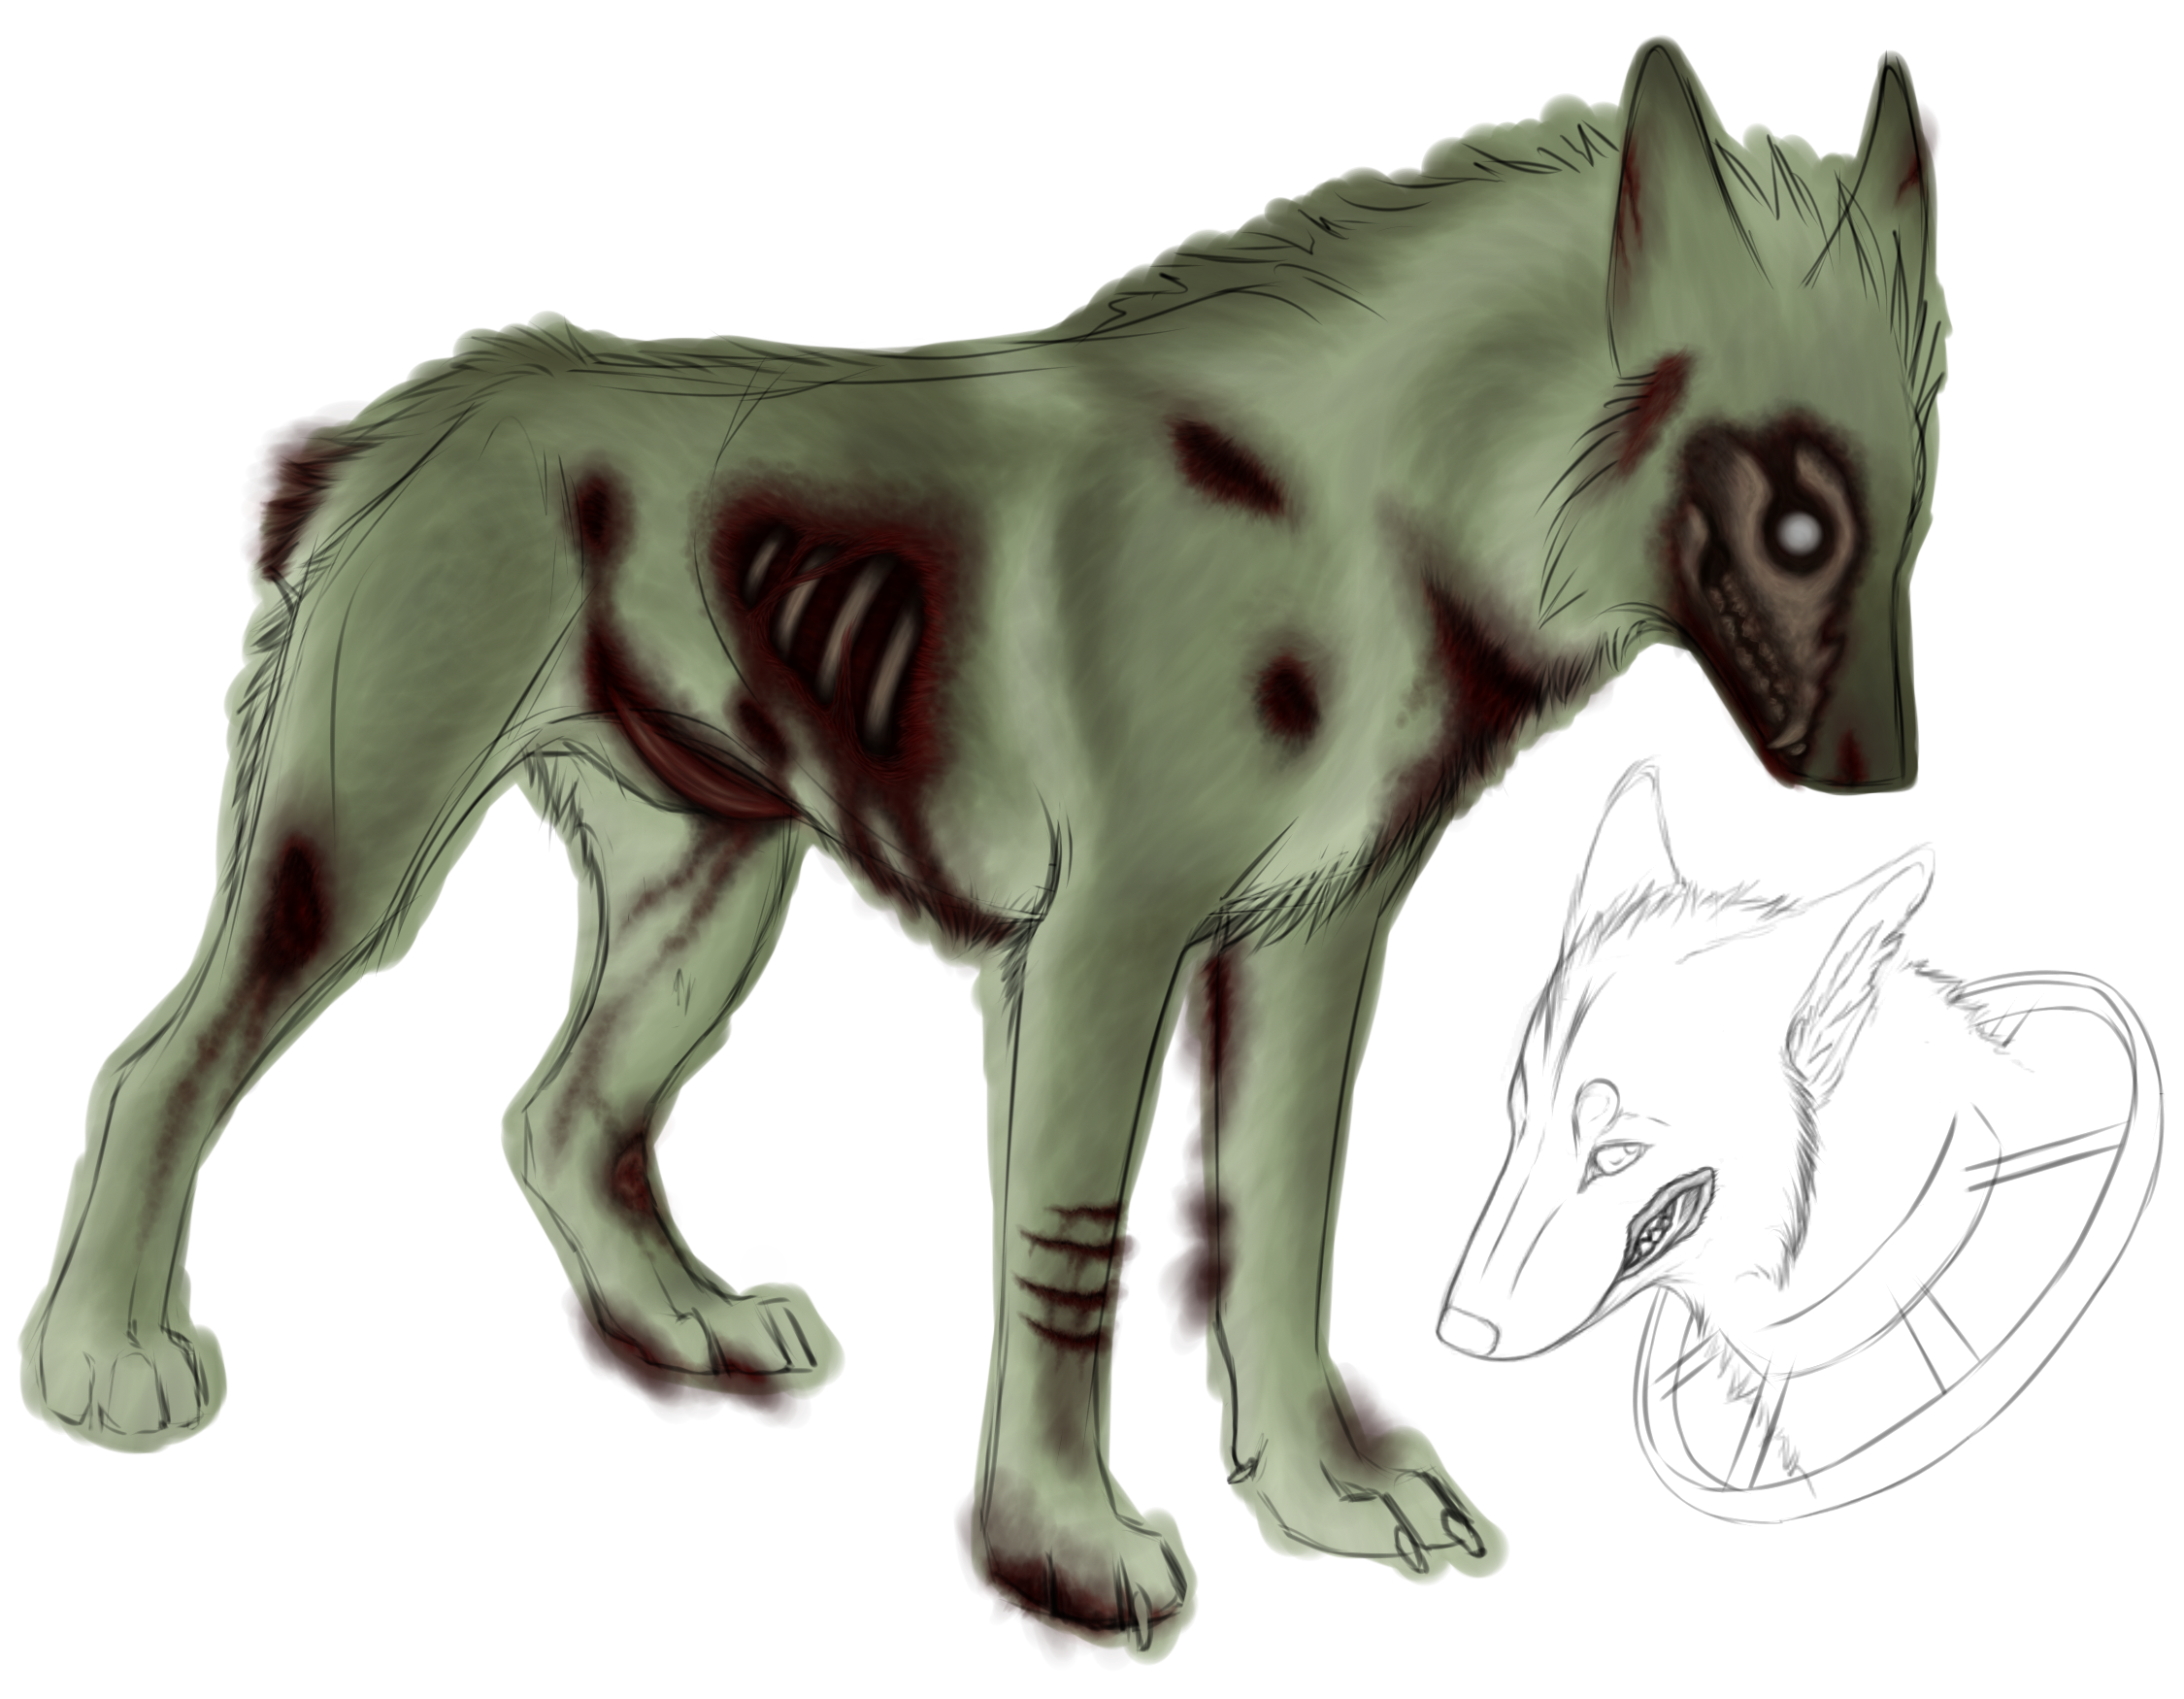 Zombie dog clipart clipart black and white library Zombie Dog Drawing at GetDrawings.com | Free for personal use Zombie ... clipart black and white library